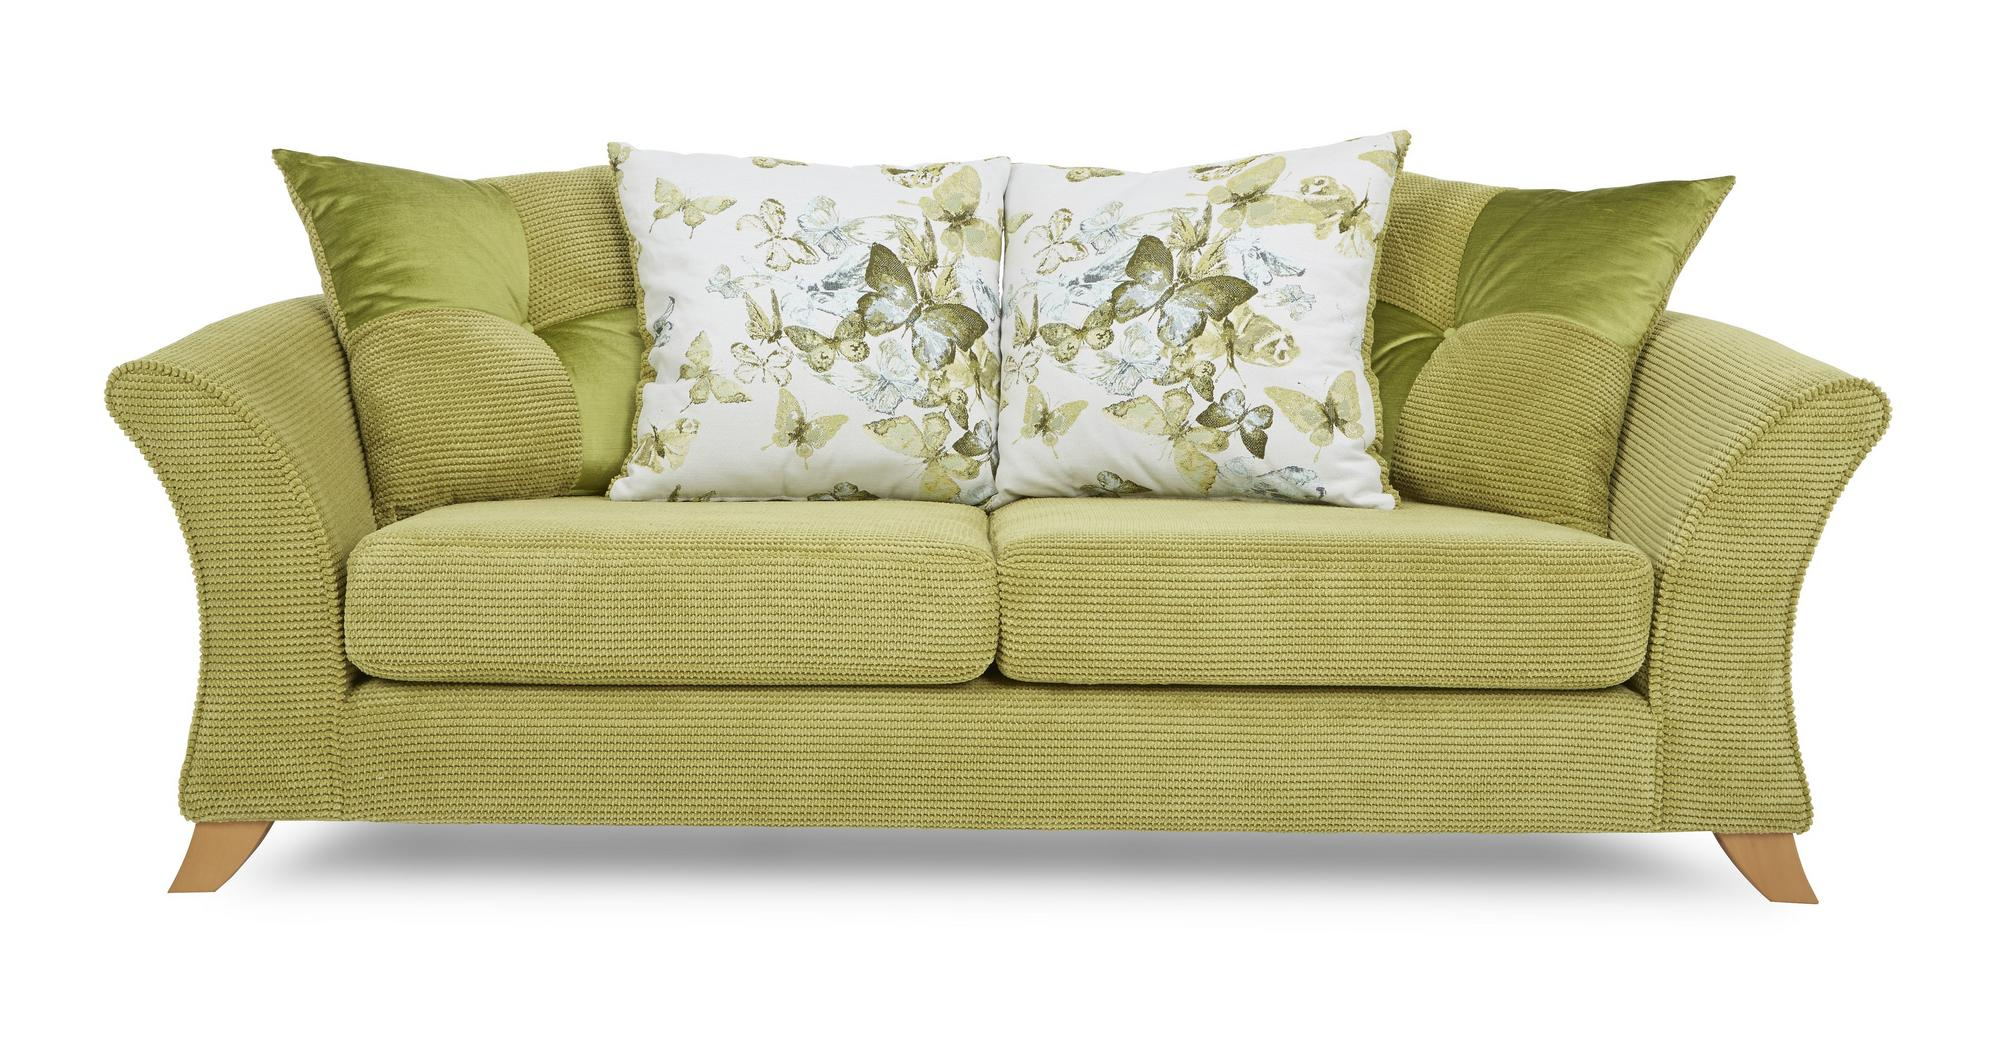 DFS Corinne Lime Green Fabric 3 Seater Pillow Back Sofa